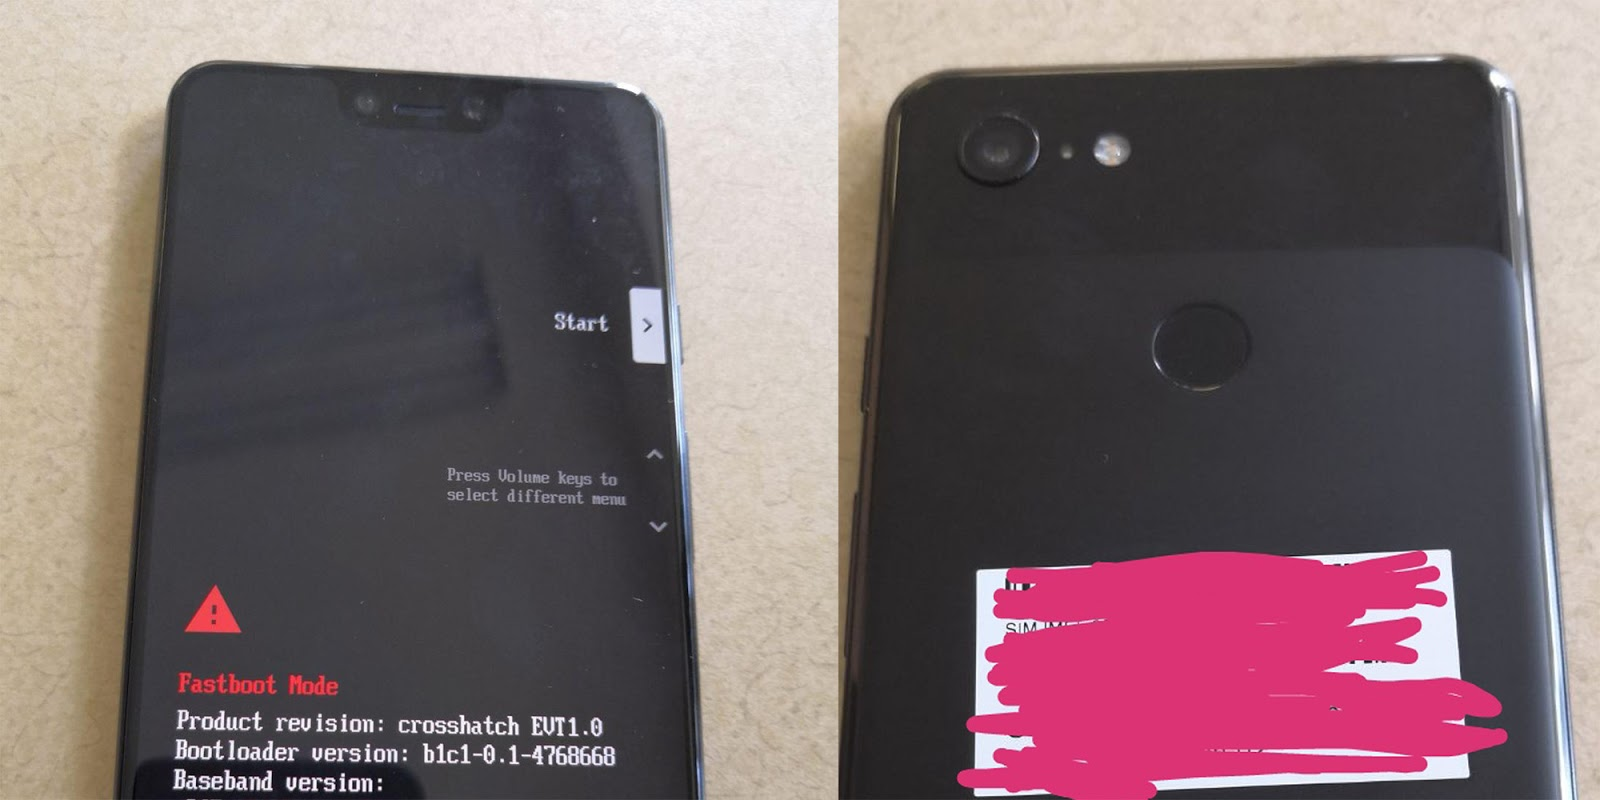 [Leaked] Google Pixel 3 XL In All Its Glory Shows Us The Notch And More